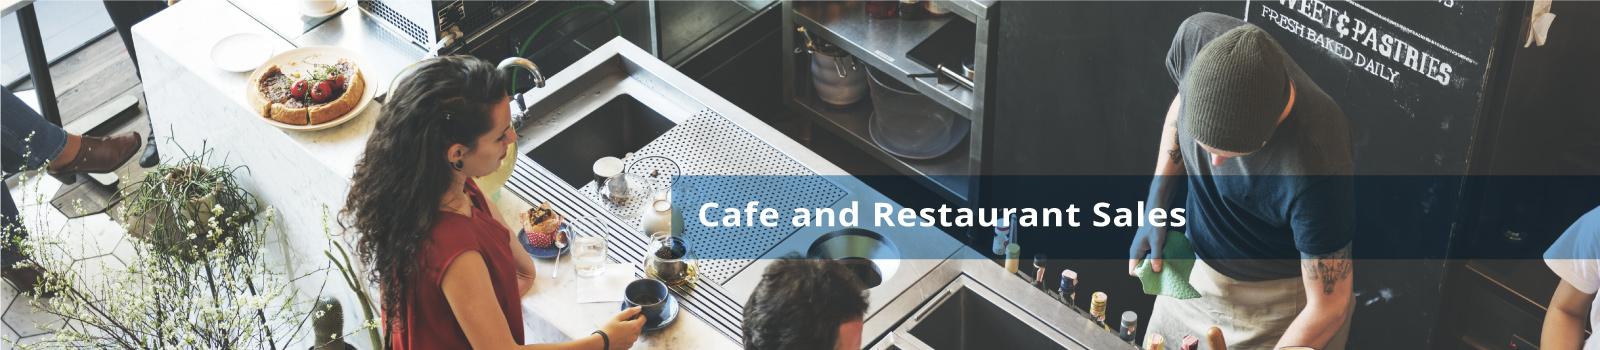 Cafe and Restaurant Sales